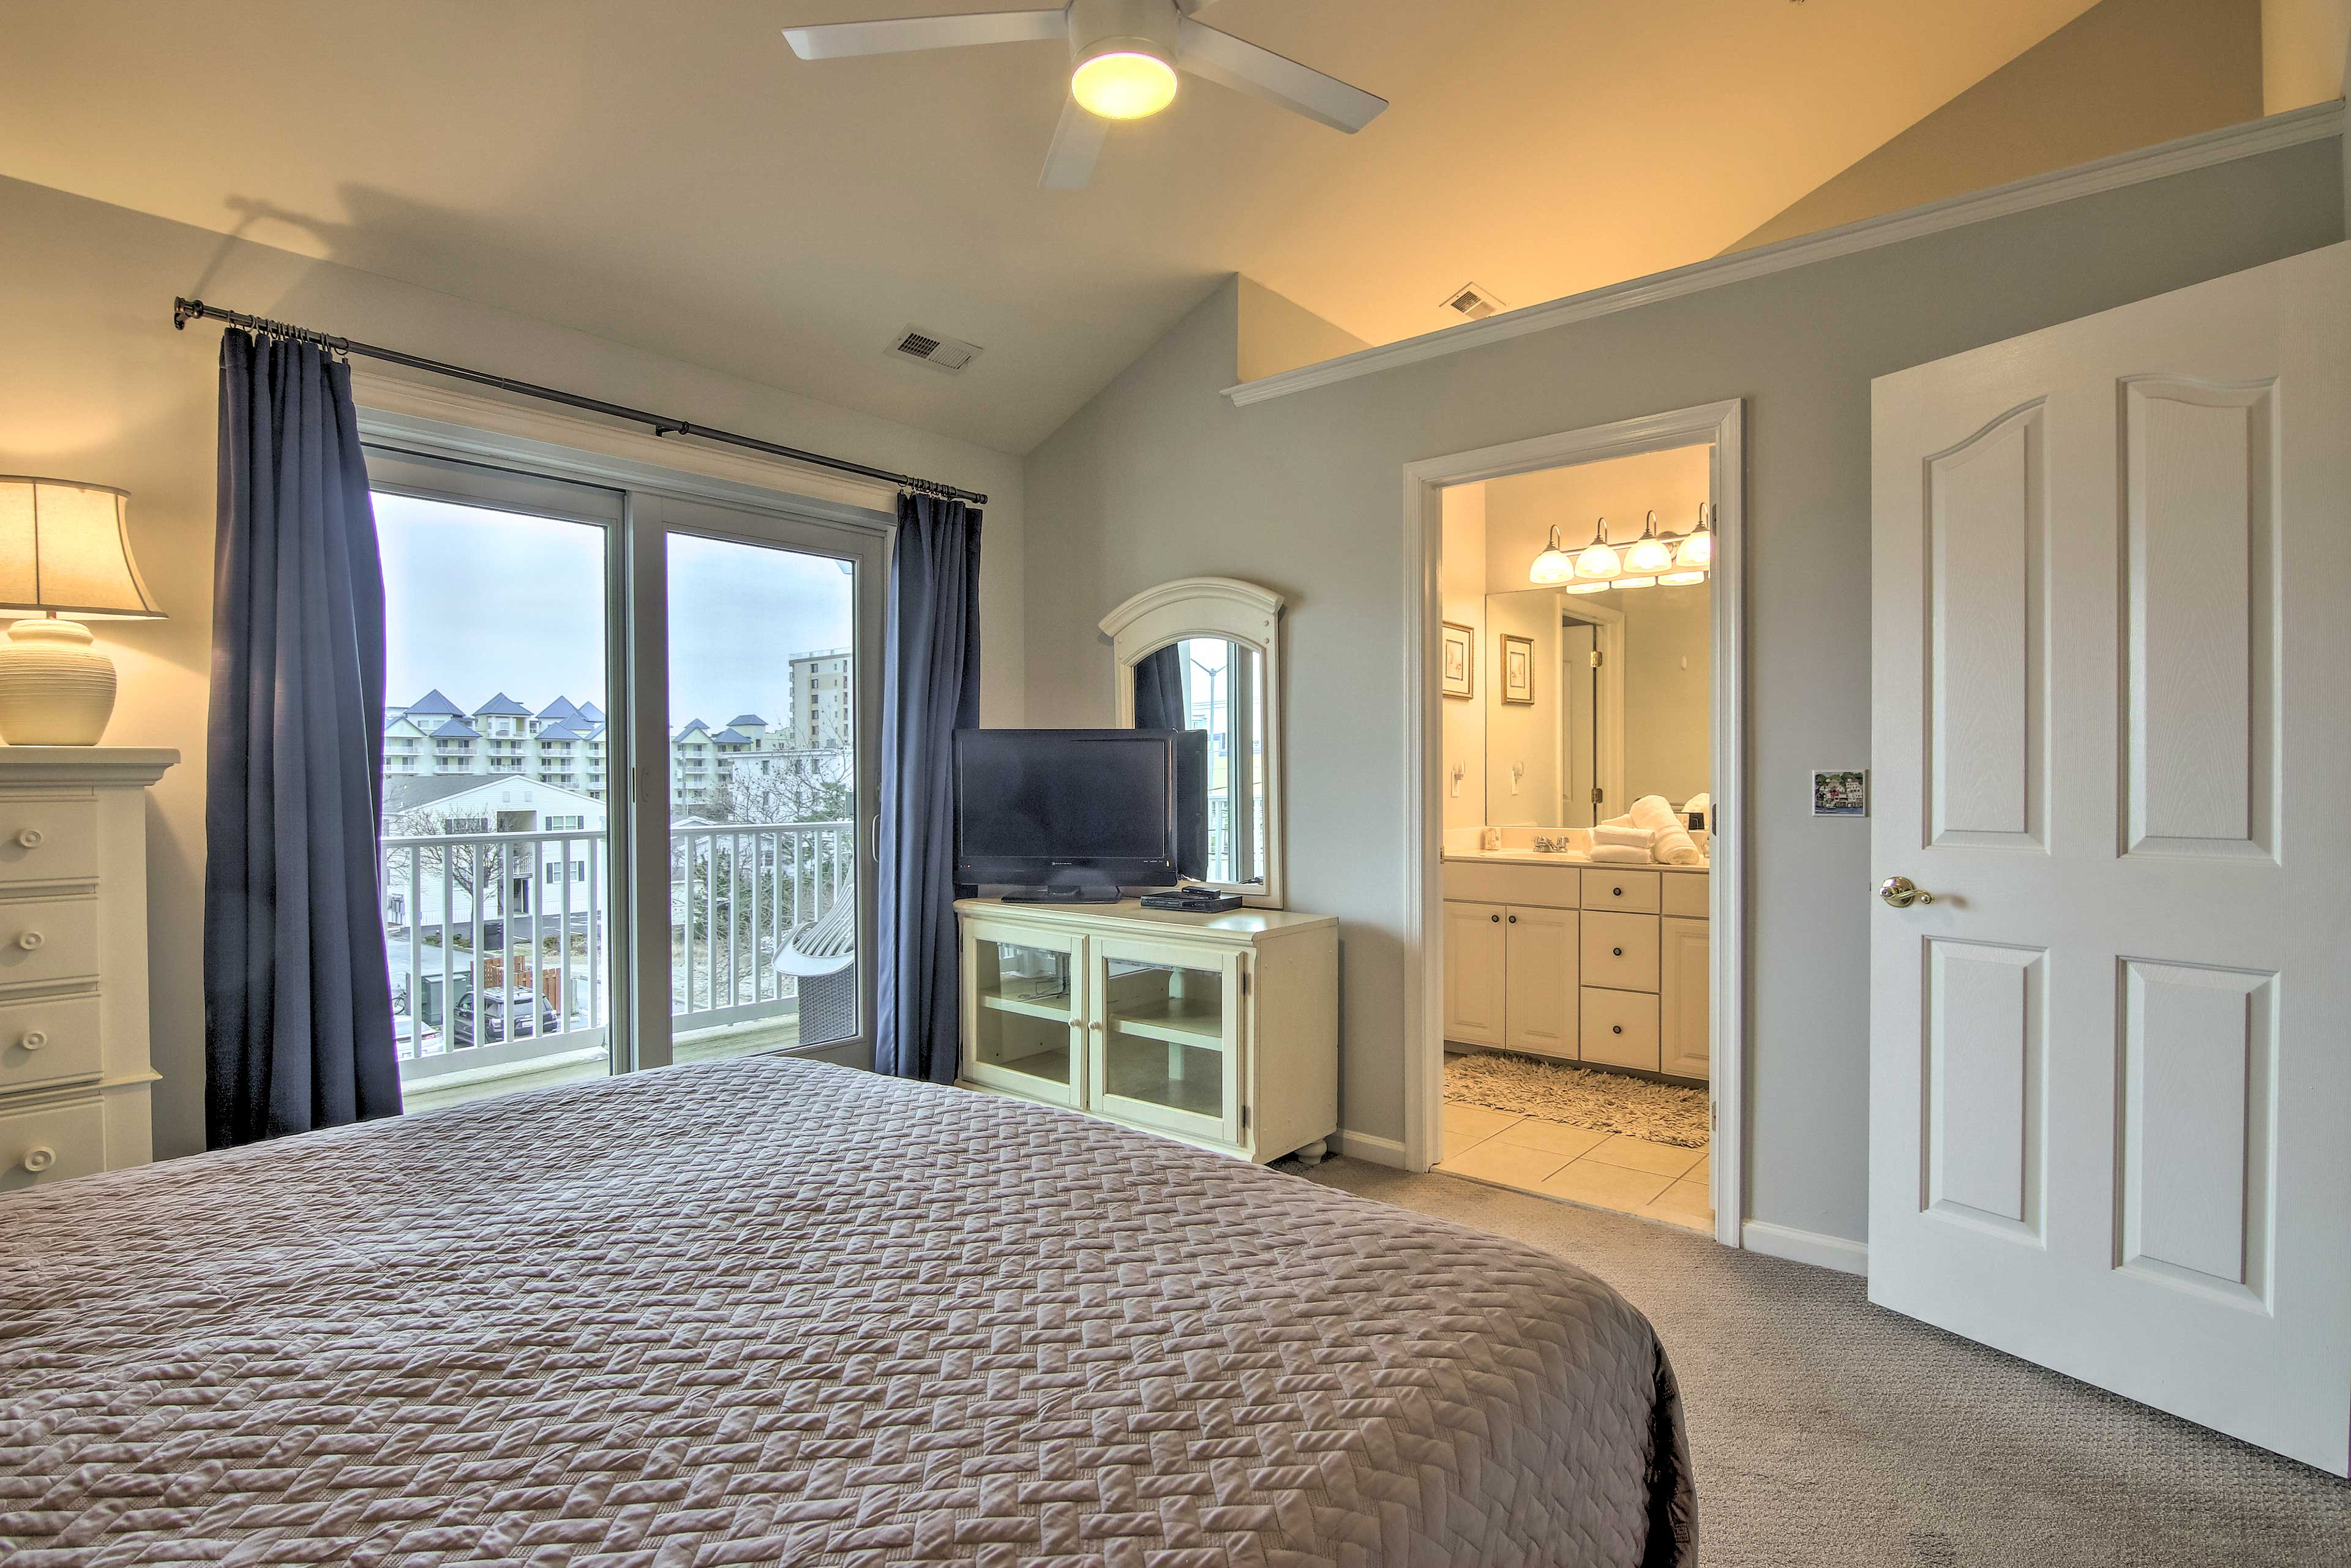 This room offers a flat-screen TV and en-suite bath.